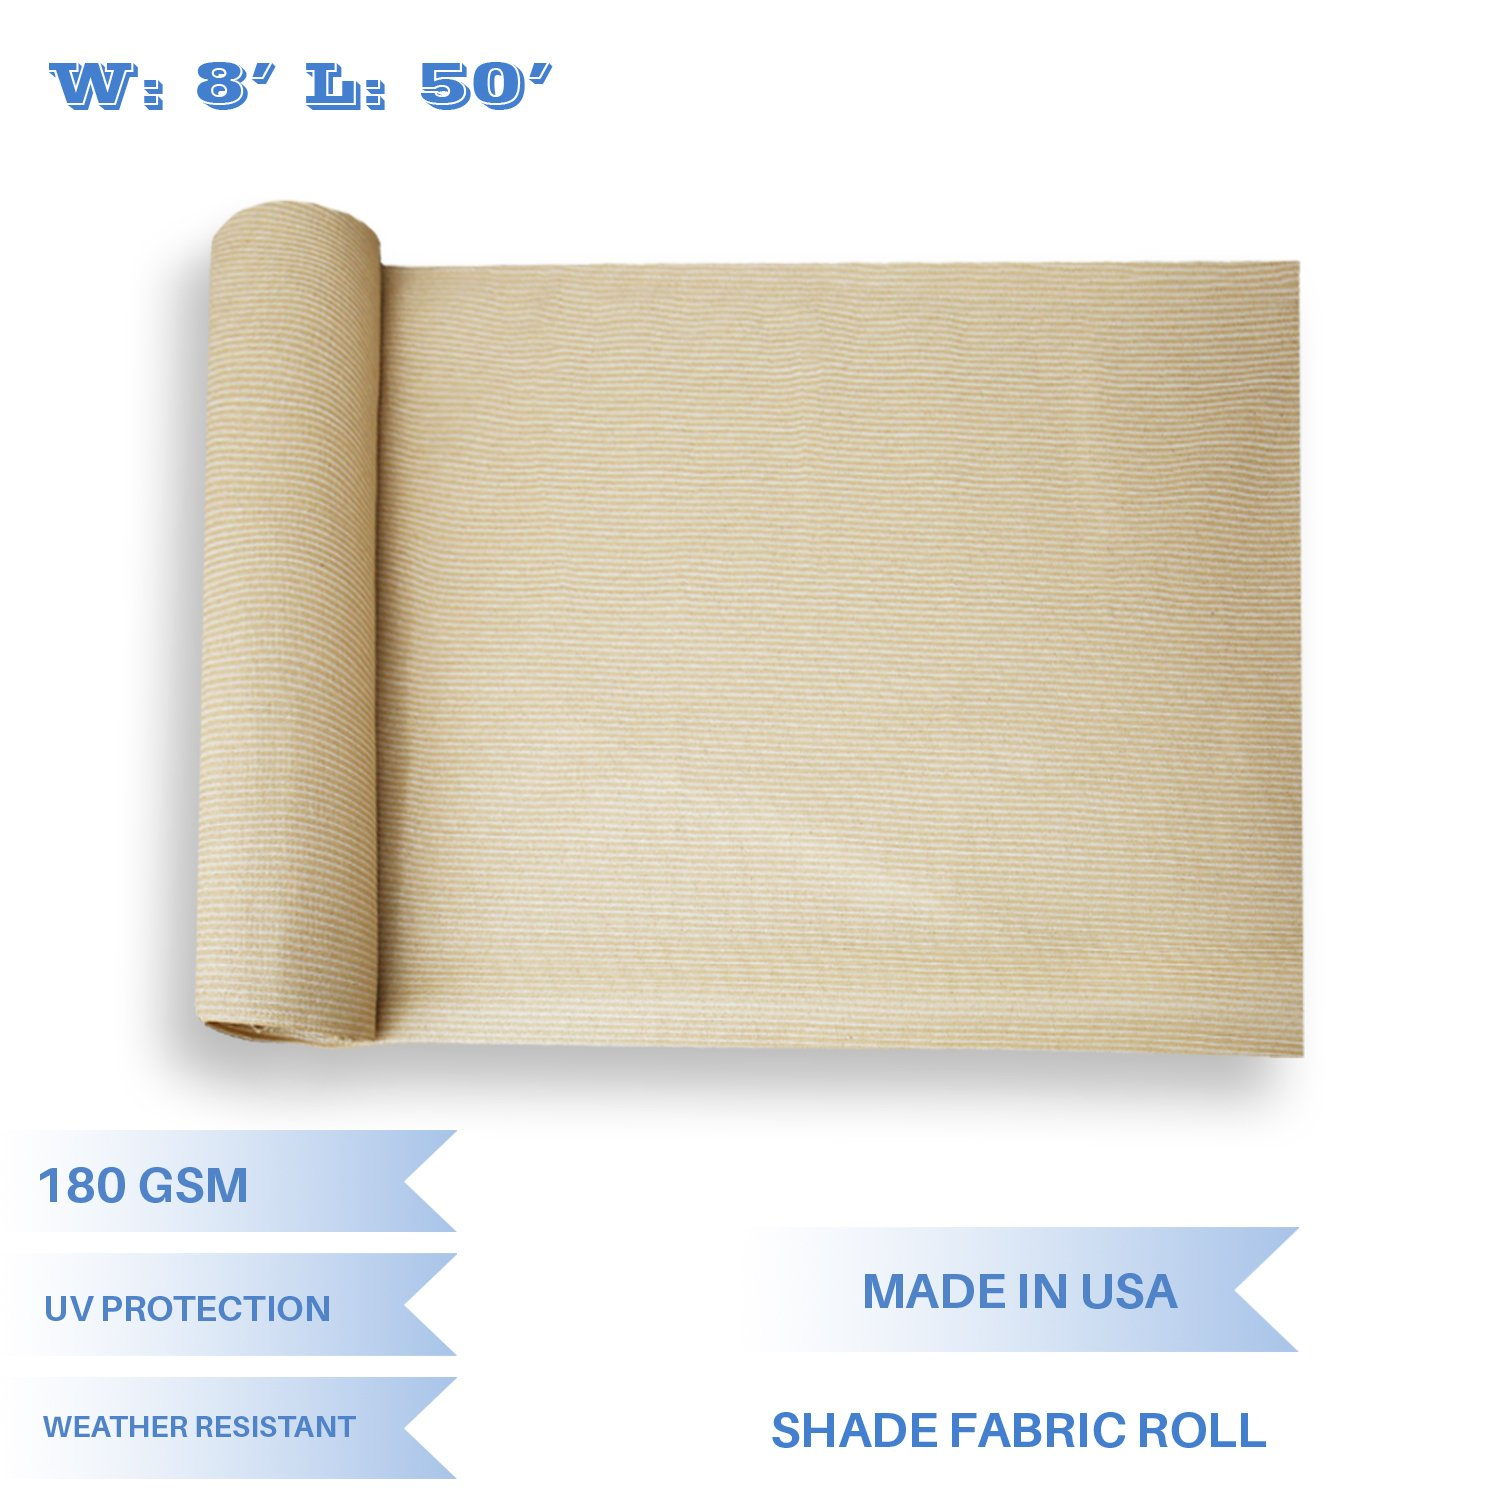 E&K Sunrise 8' x 50' Beige Sun Shade Fabric Sunblock Shade Cloth Roll, 95% UV Resistant Mesh Netting Cover for Outdoor,Backyard,Garden,Greenhouse,Barn,Plant (Customized by E&K Sunrise